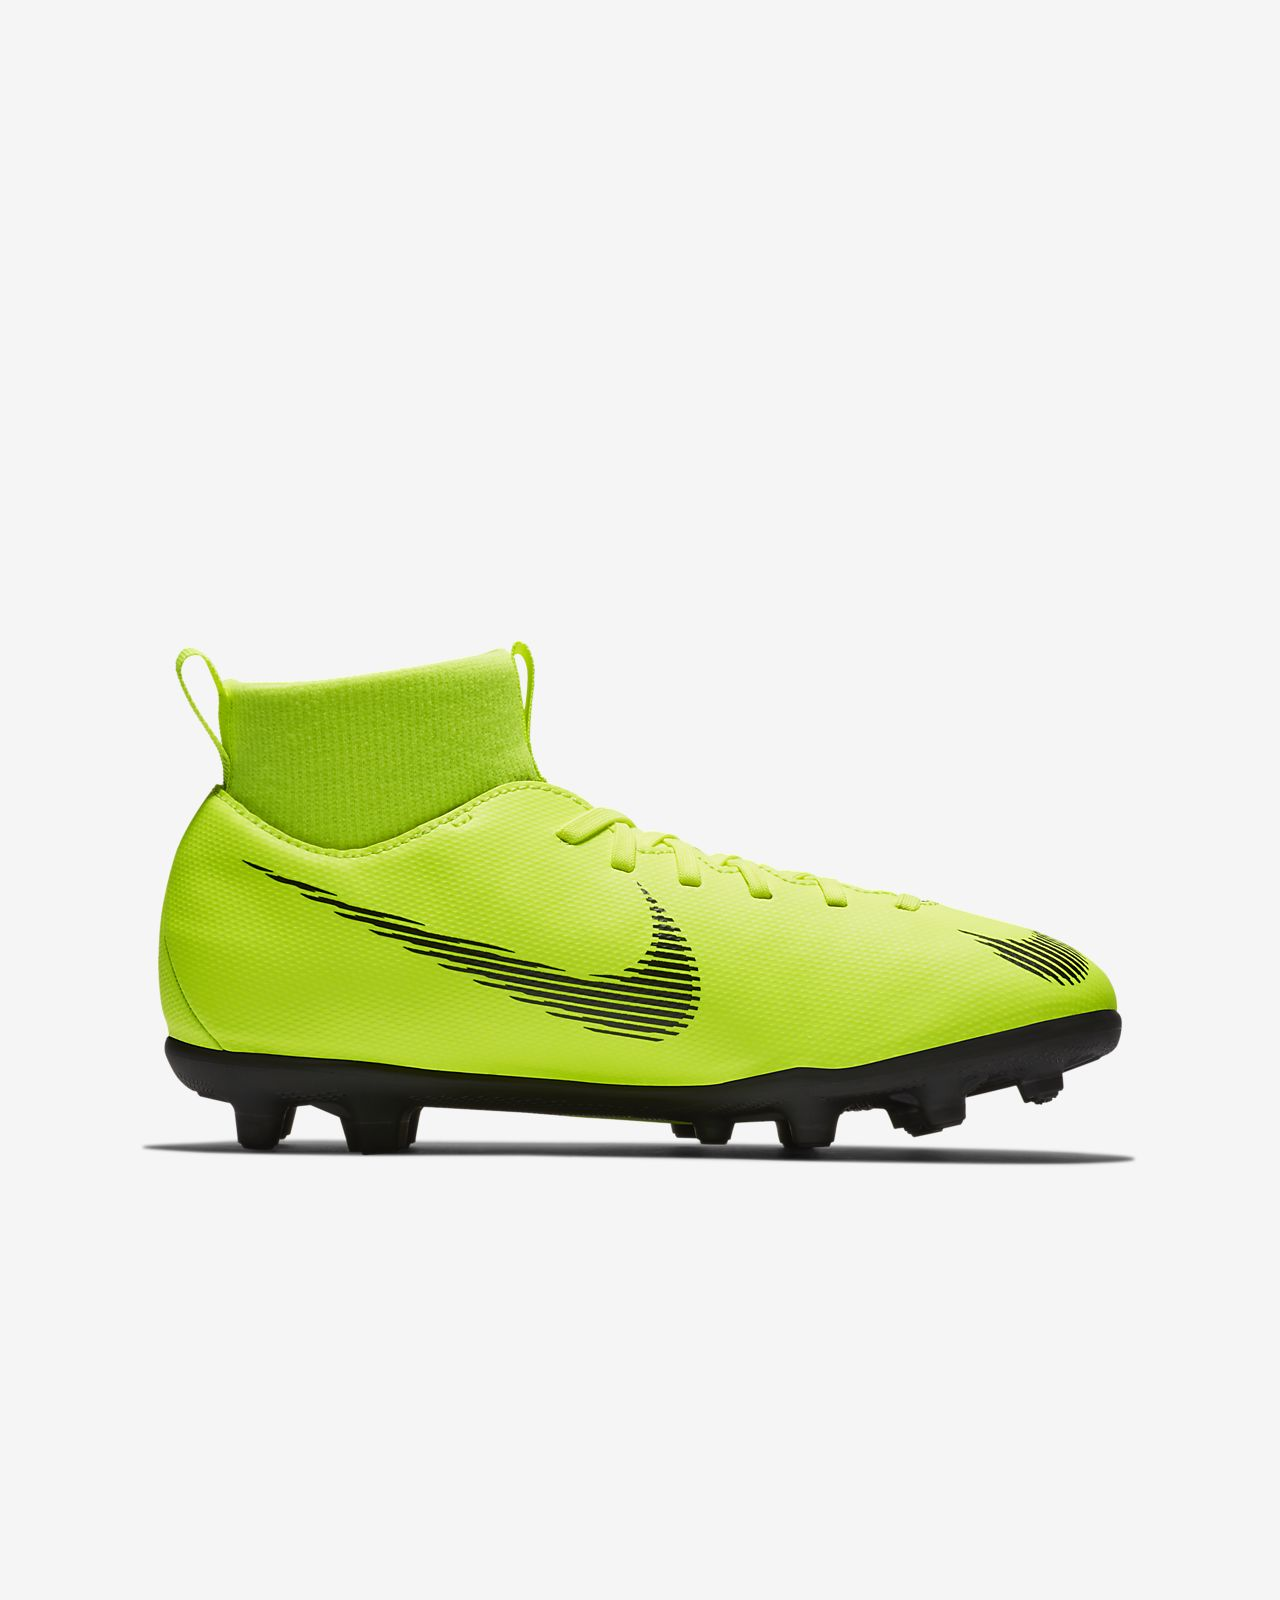 506a7511bf200 ... Nike Jr. Mercurial Superfly VI Club Botas de fútbol para múltiples  superficies - Niño